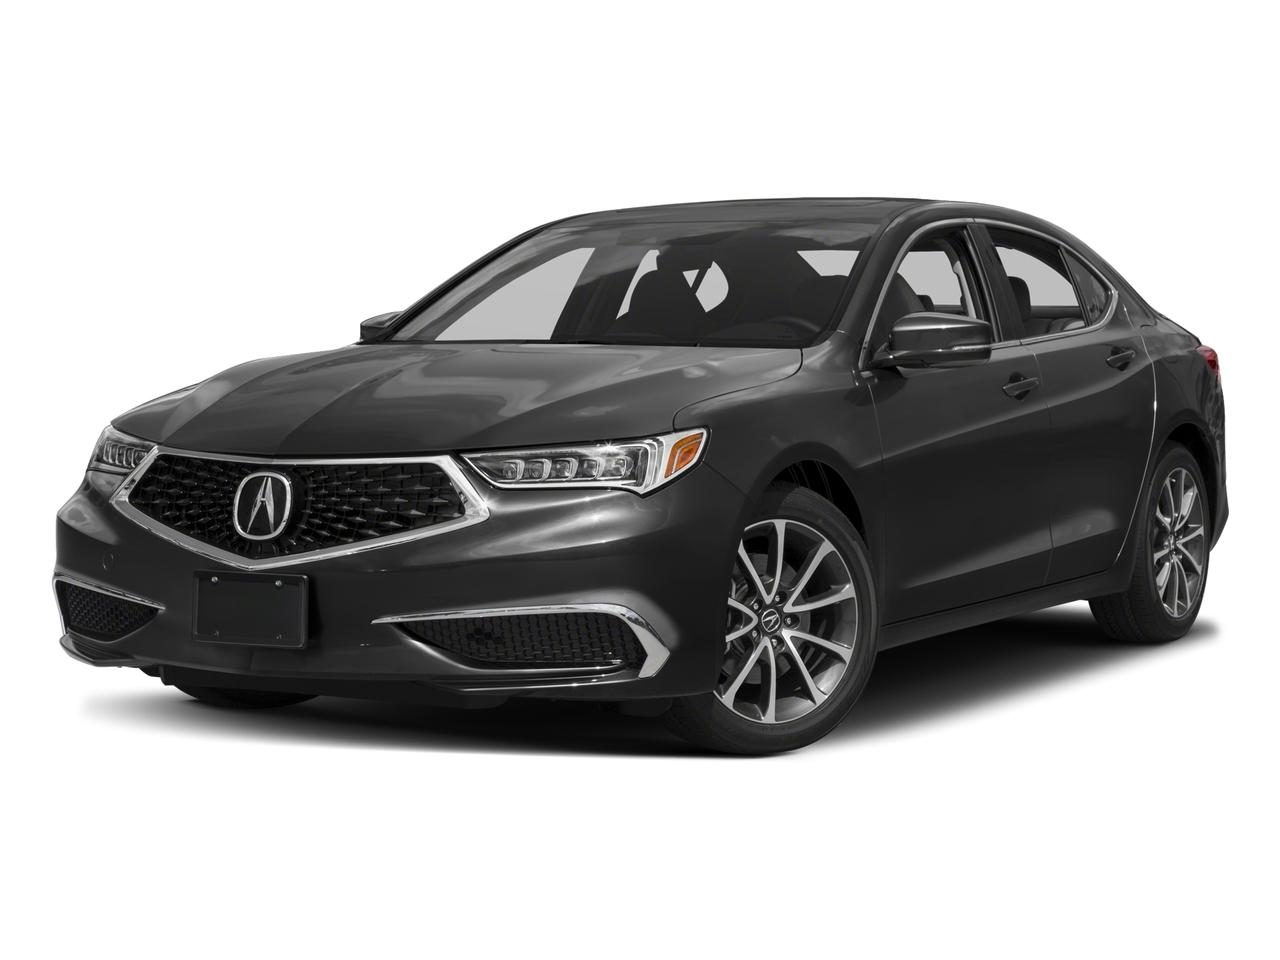 2018 Acura TLX Vehicle Photo in Rockville, MD 20852